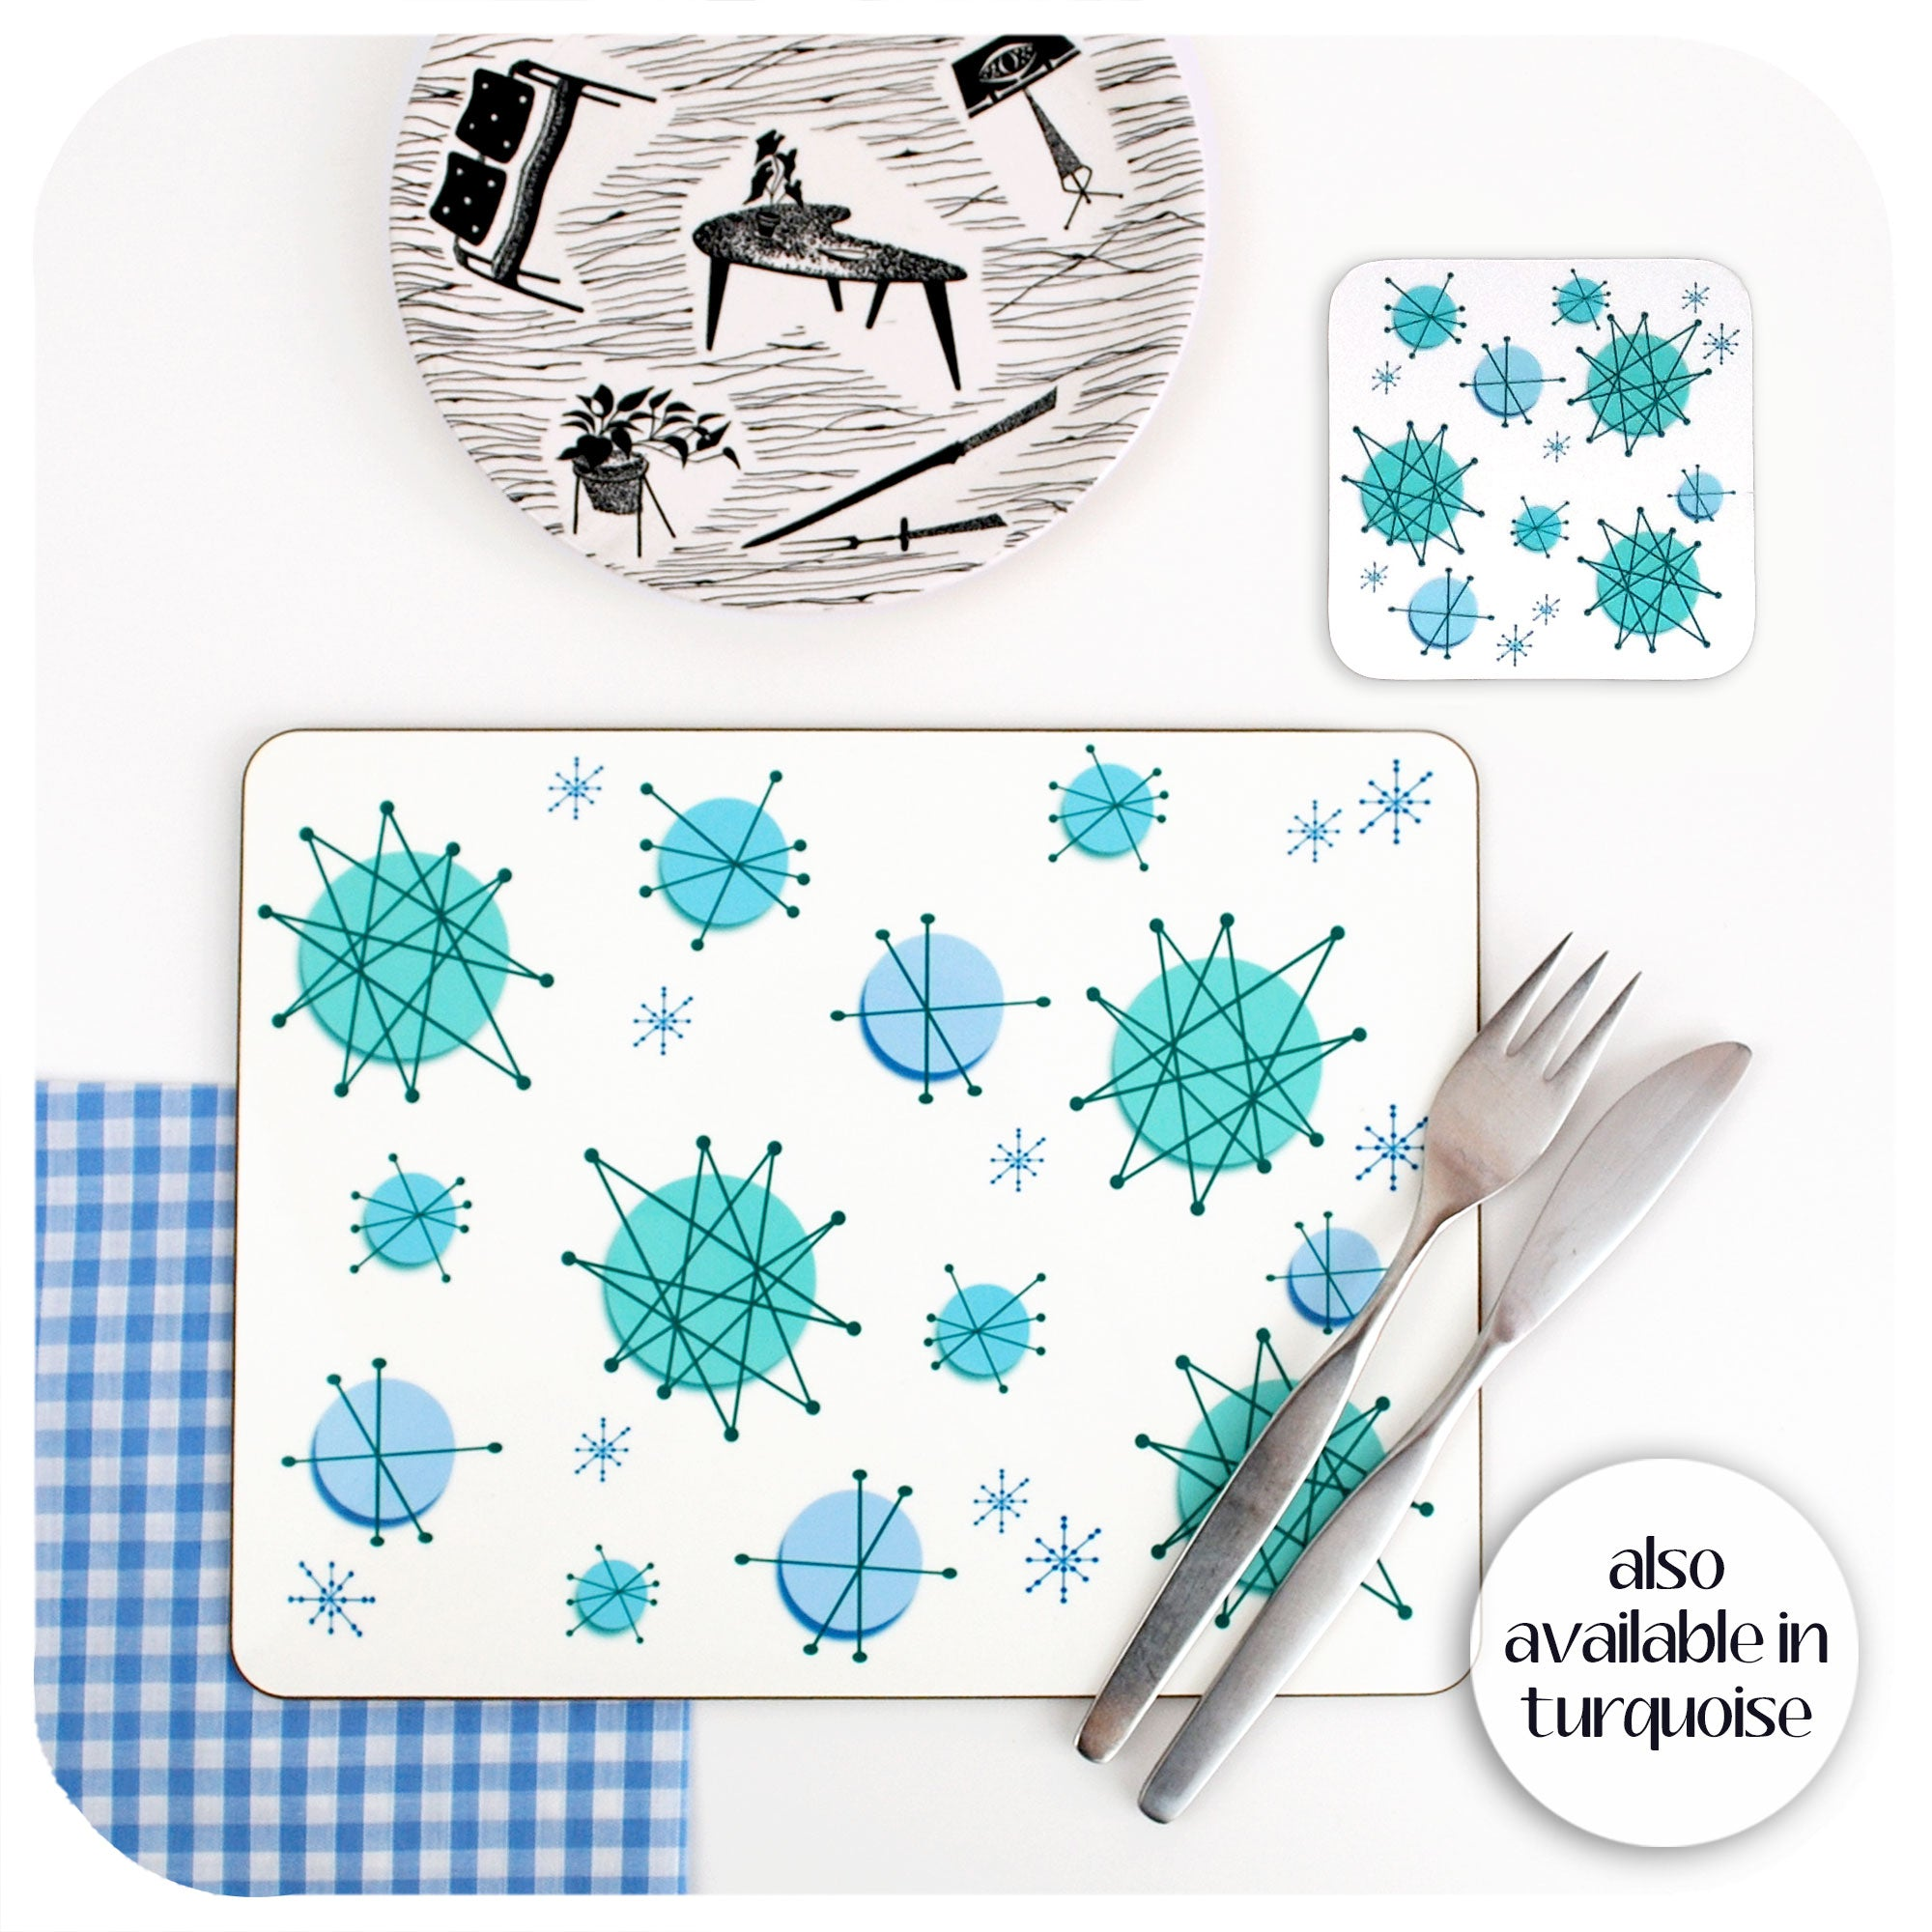 Atomic Starburst Placemat and Coaster in Turquoise also available | The Inkabilly Emporium